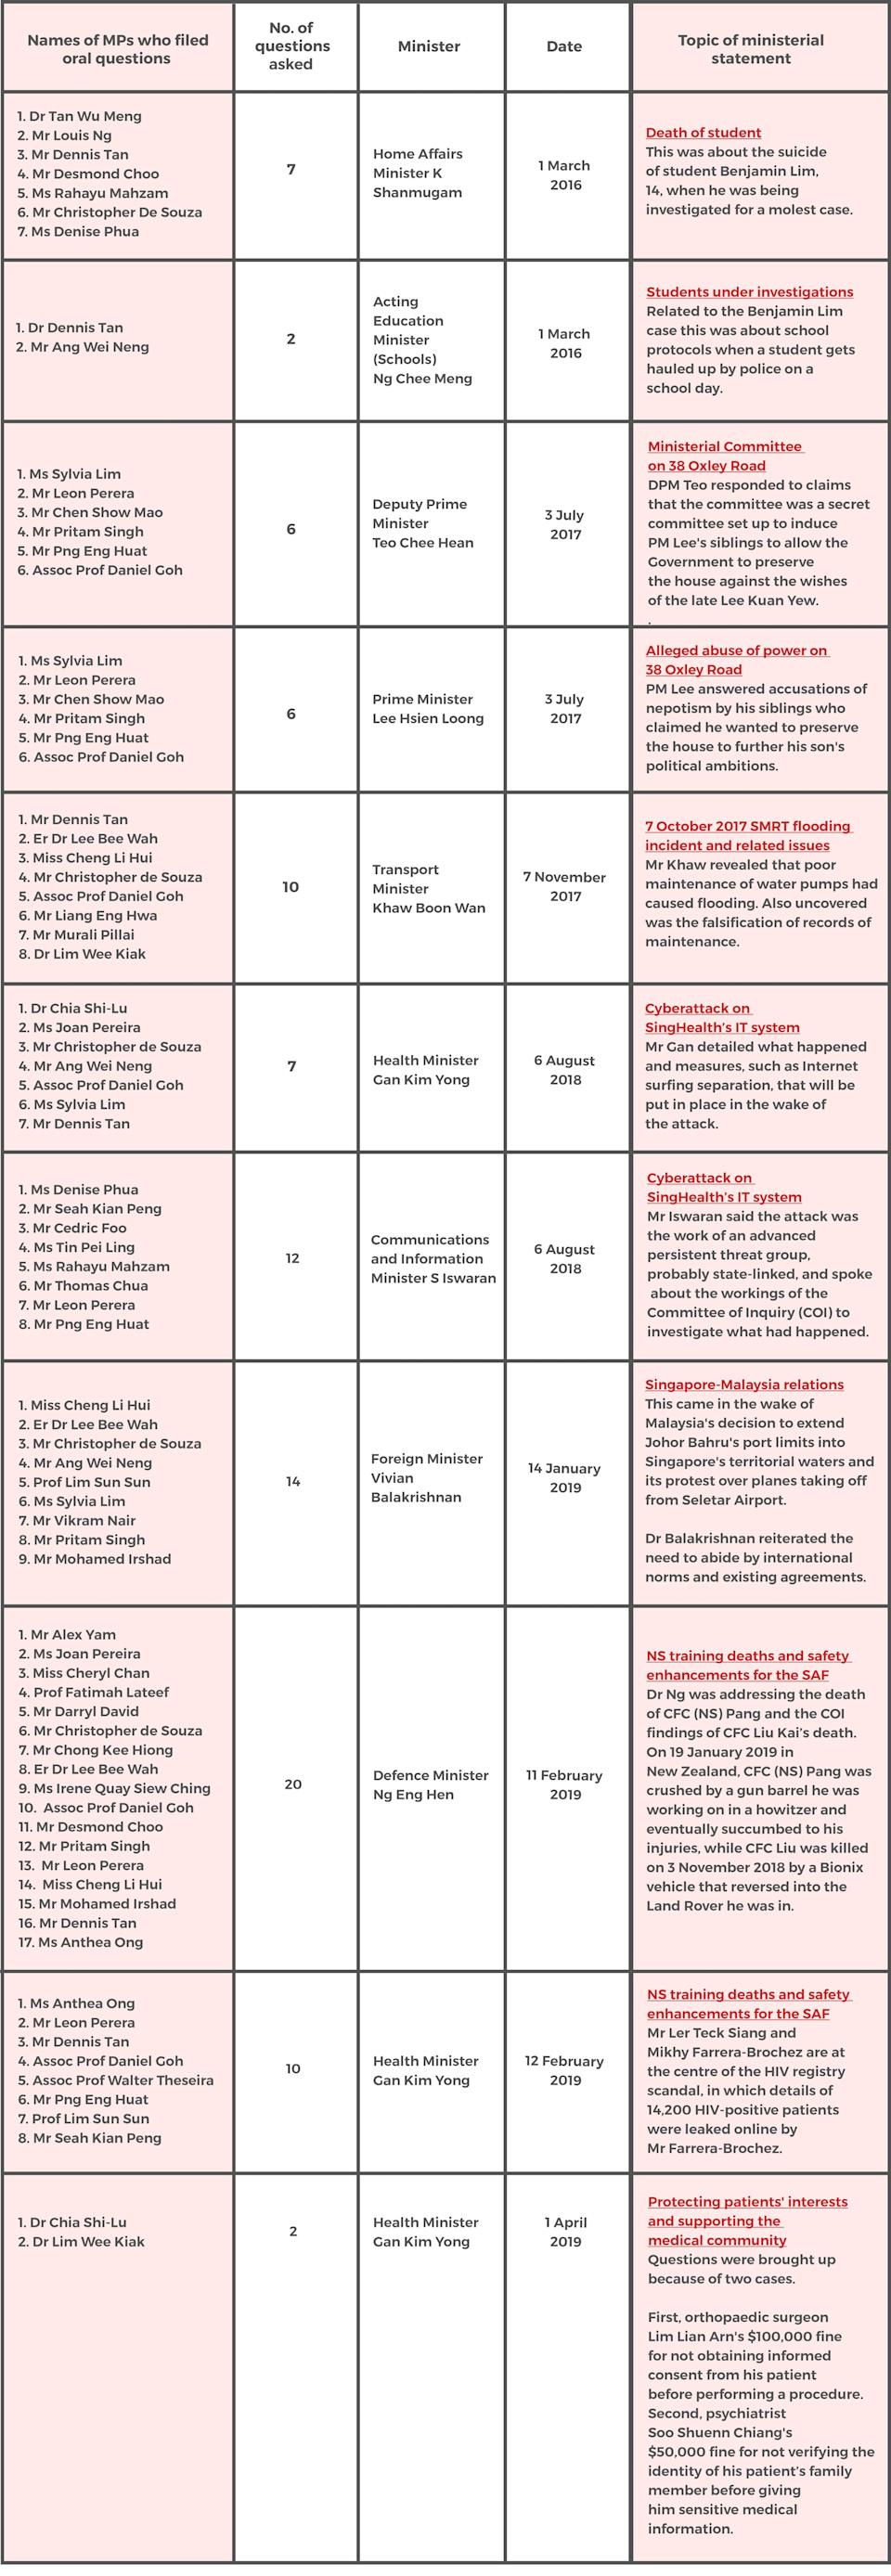 Ministerial statements and MPs who filed oral questions. Source: Parliament of Singapore